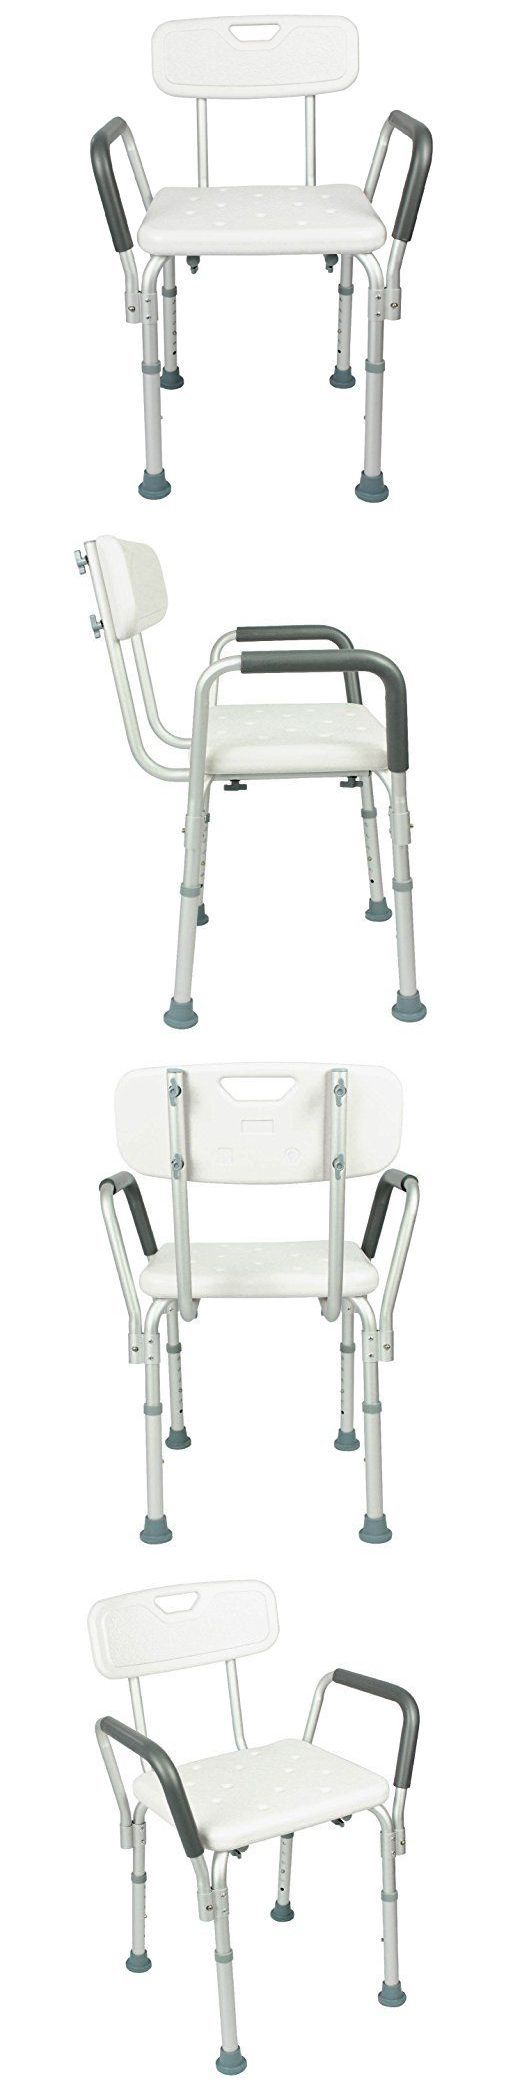 Shower and Bath Seats: Shower Chairs Height Adjustable Seat Stool Bath Tubs Grip Safety Toilet Handicap -> BUY IT NOW ONLY: $77.01 on eBay!